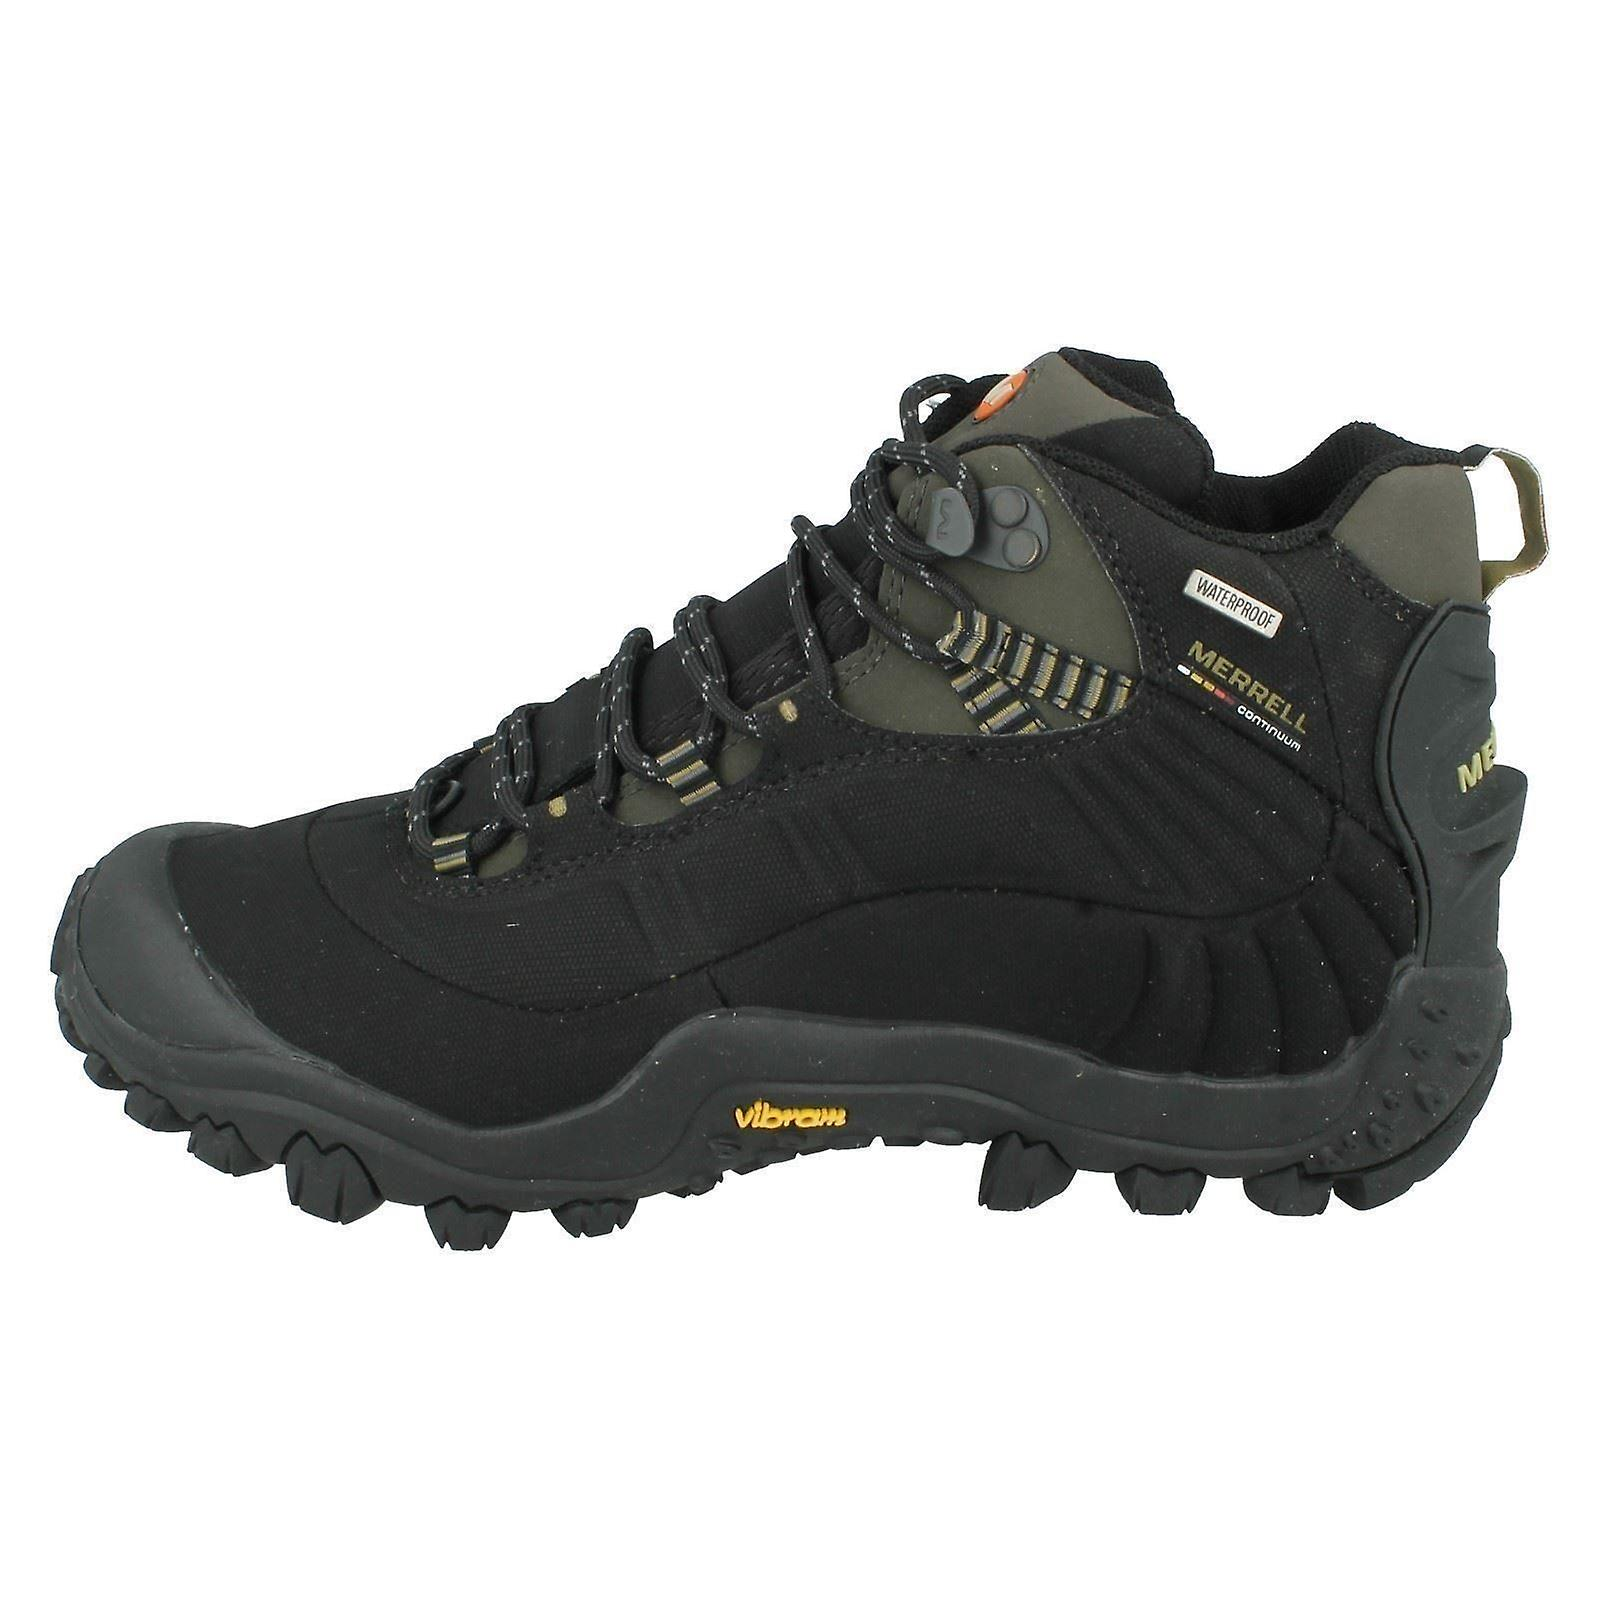 452bf39ce2d Mens Merrell Walking Boots Chameleon Thermo 6 WP